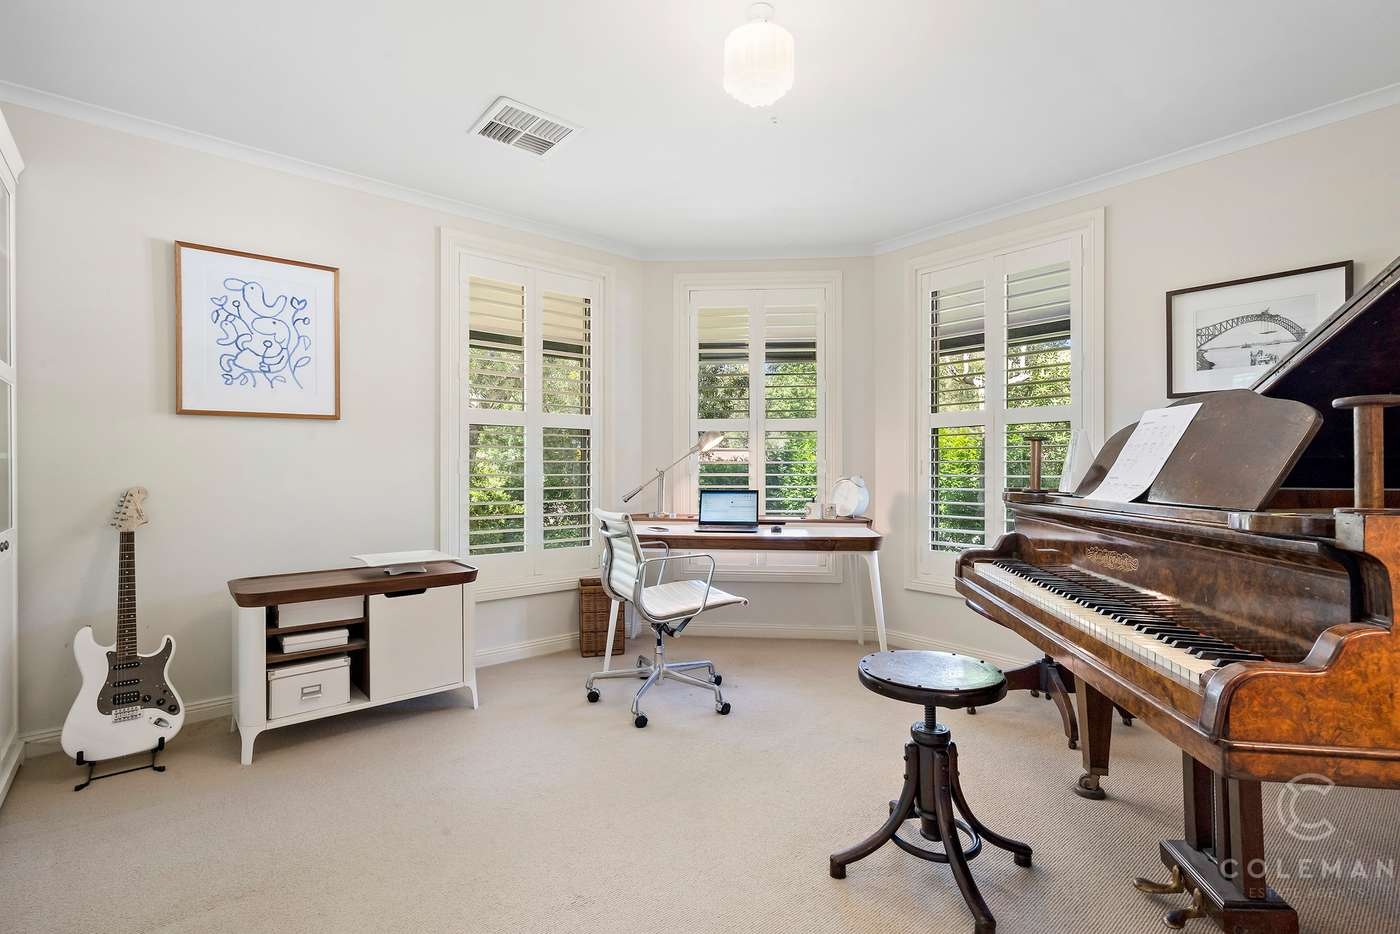 Sixth view of Homely house listing, 41 Cams Boulevard, Summerland Point NSW 2259